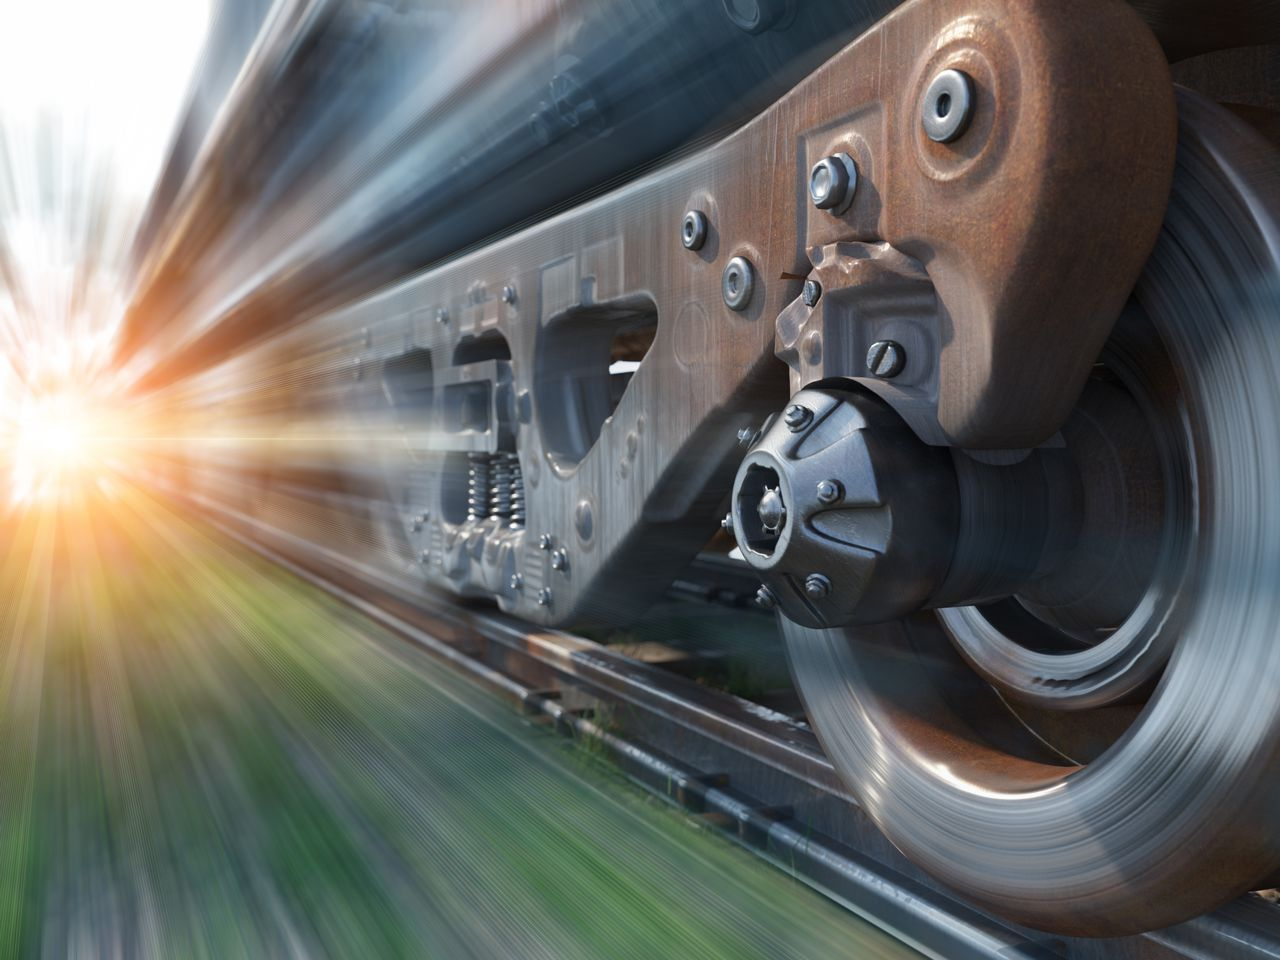 Bogie frame of a rail vehicle during motion